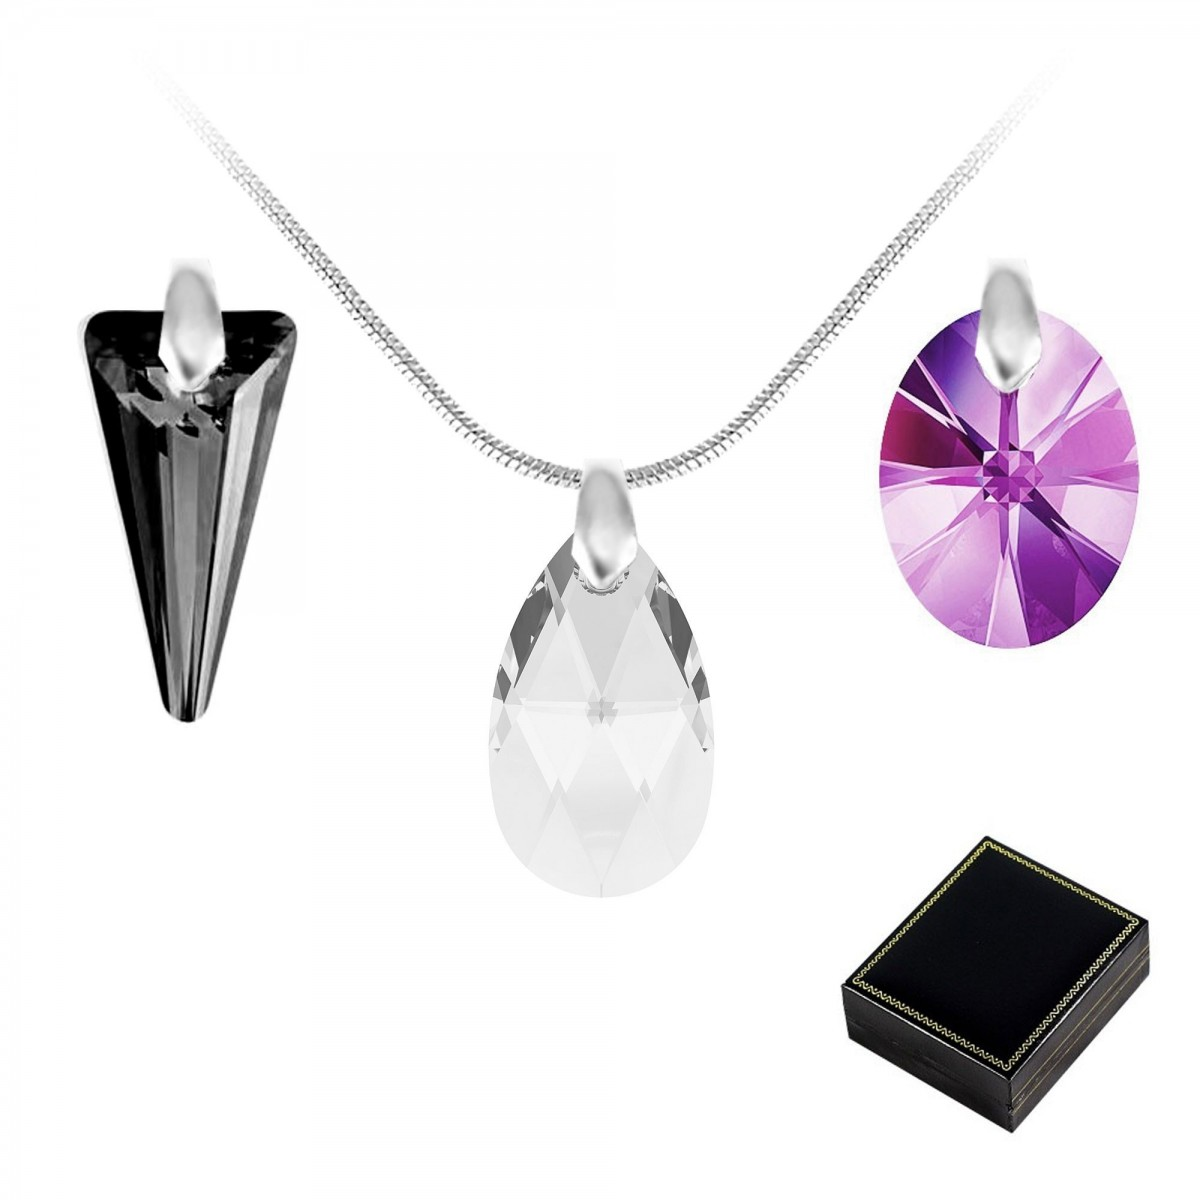 Lot de 3 pendentifs So Charm made with crystal from Swarovski